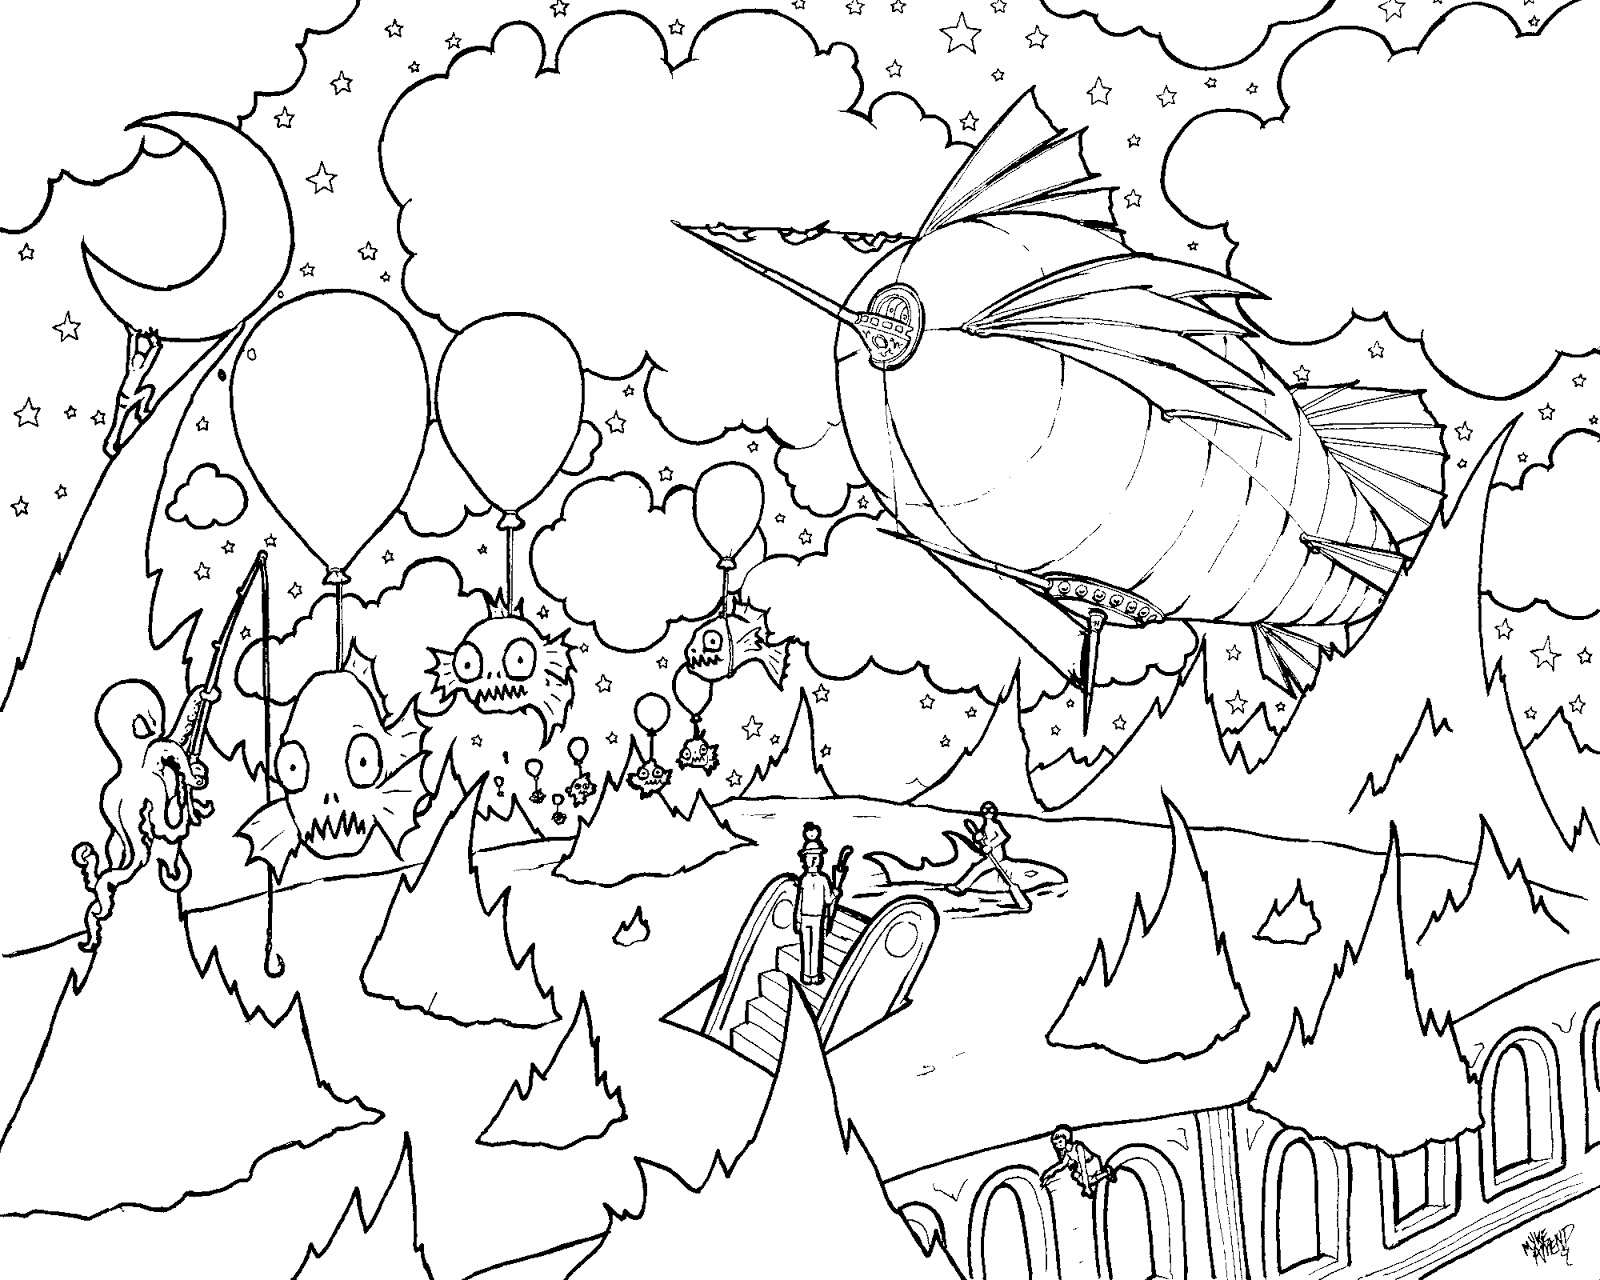 psychedelic coloring pages - photo#47